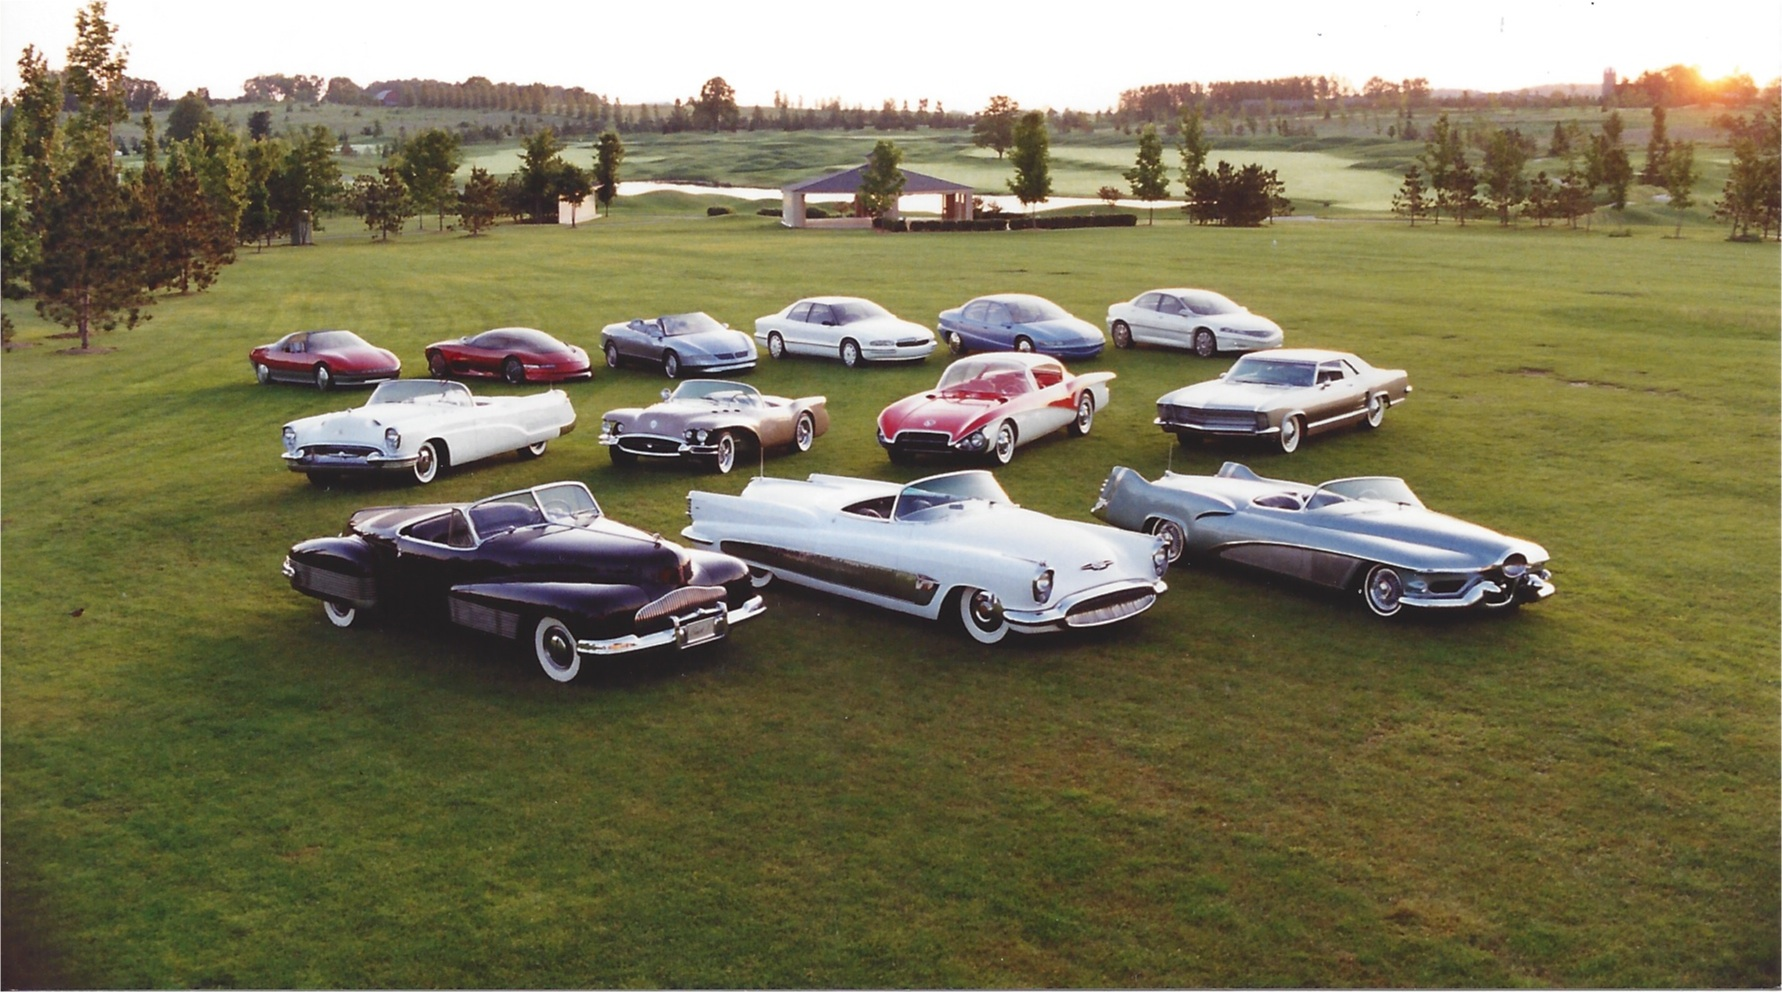 General Motors official photo of the Buick Dream Cars/Concept Cars circa 1994